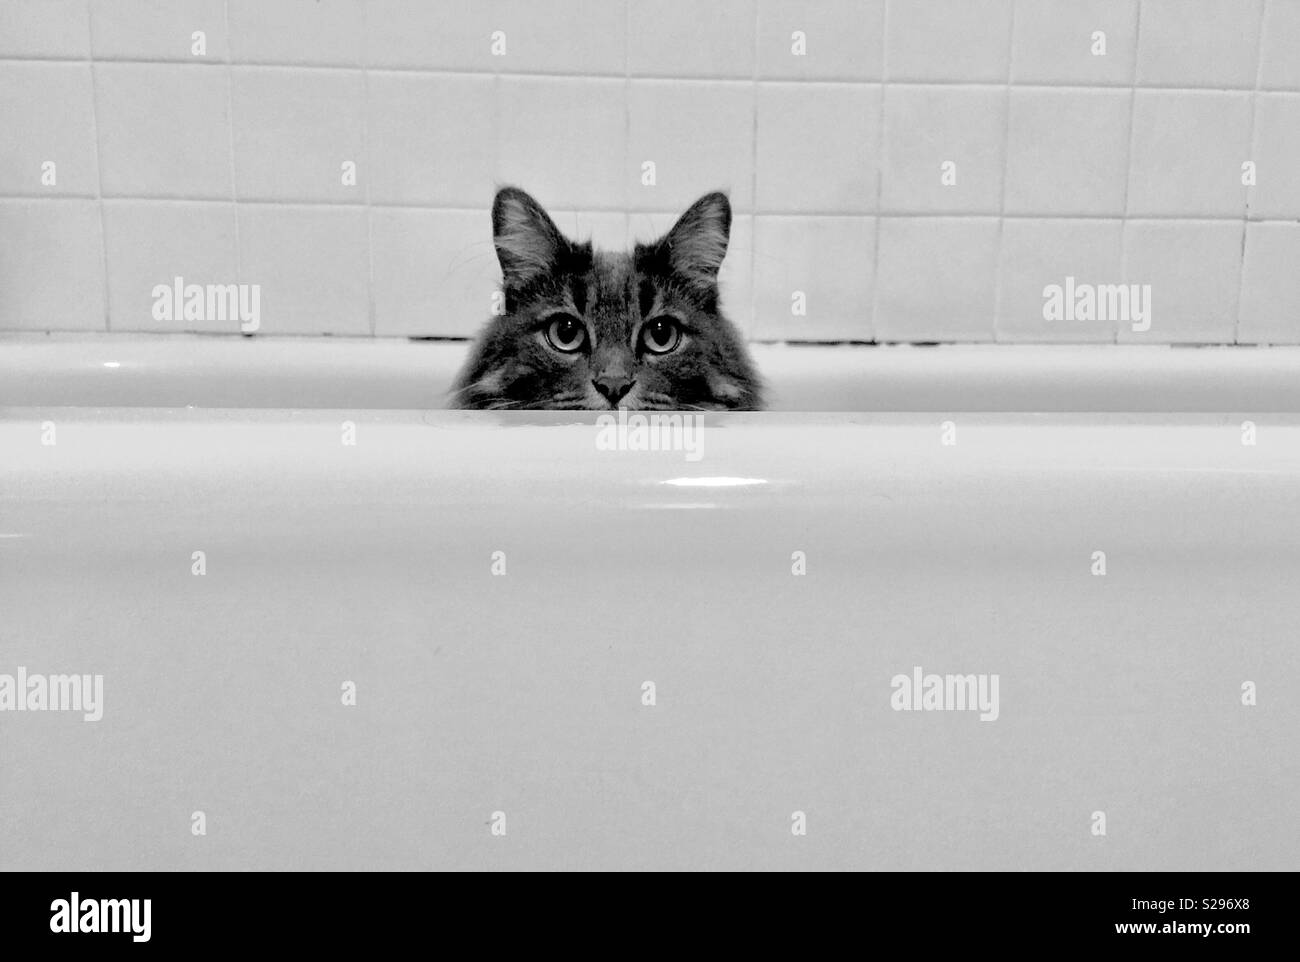 Cat in a bathtub. - Stock Image